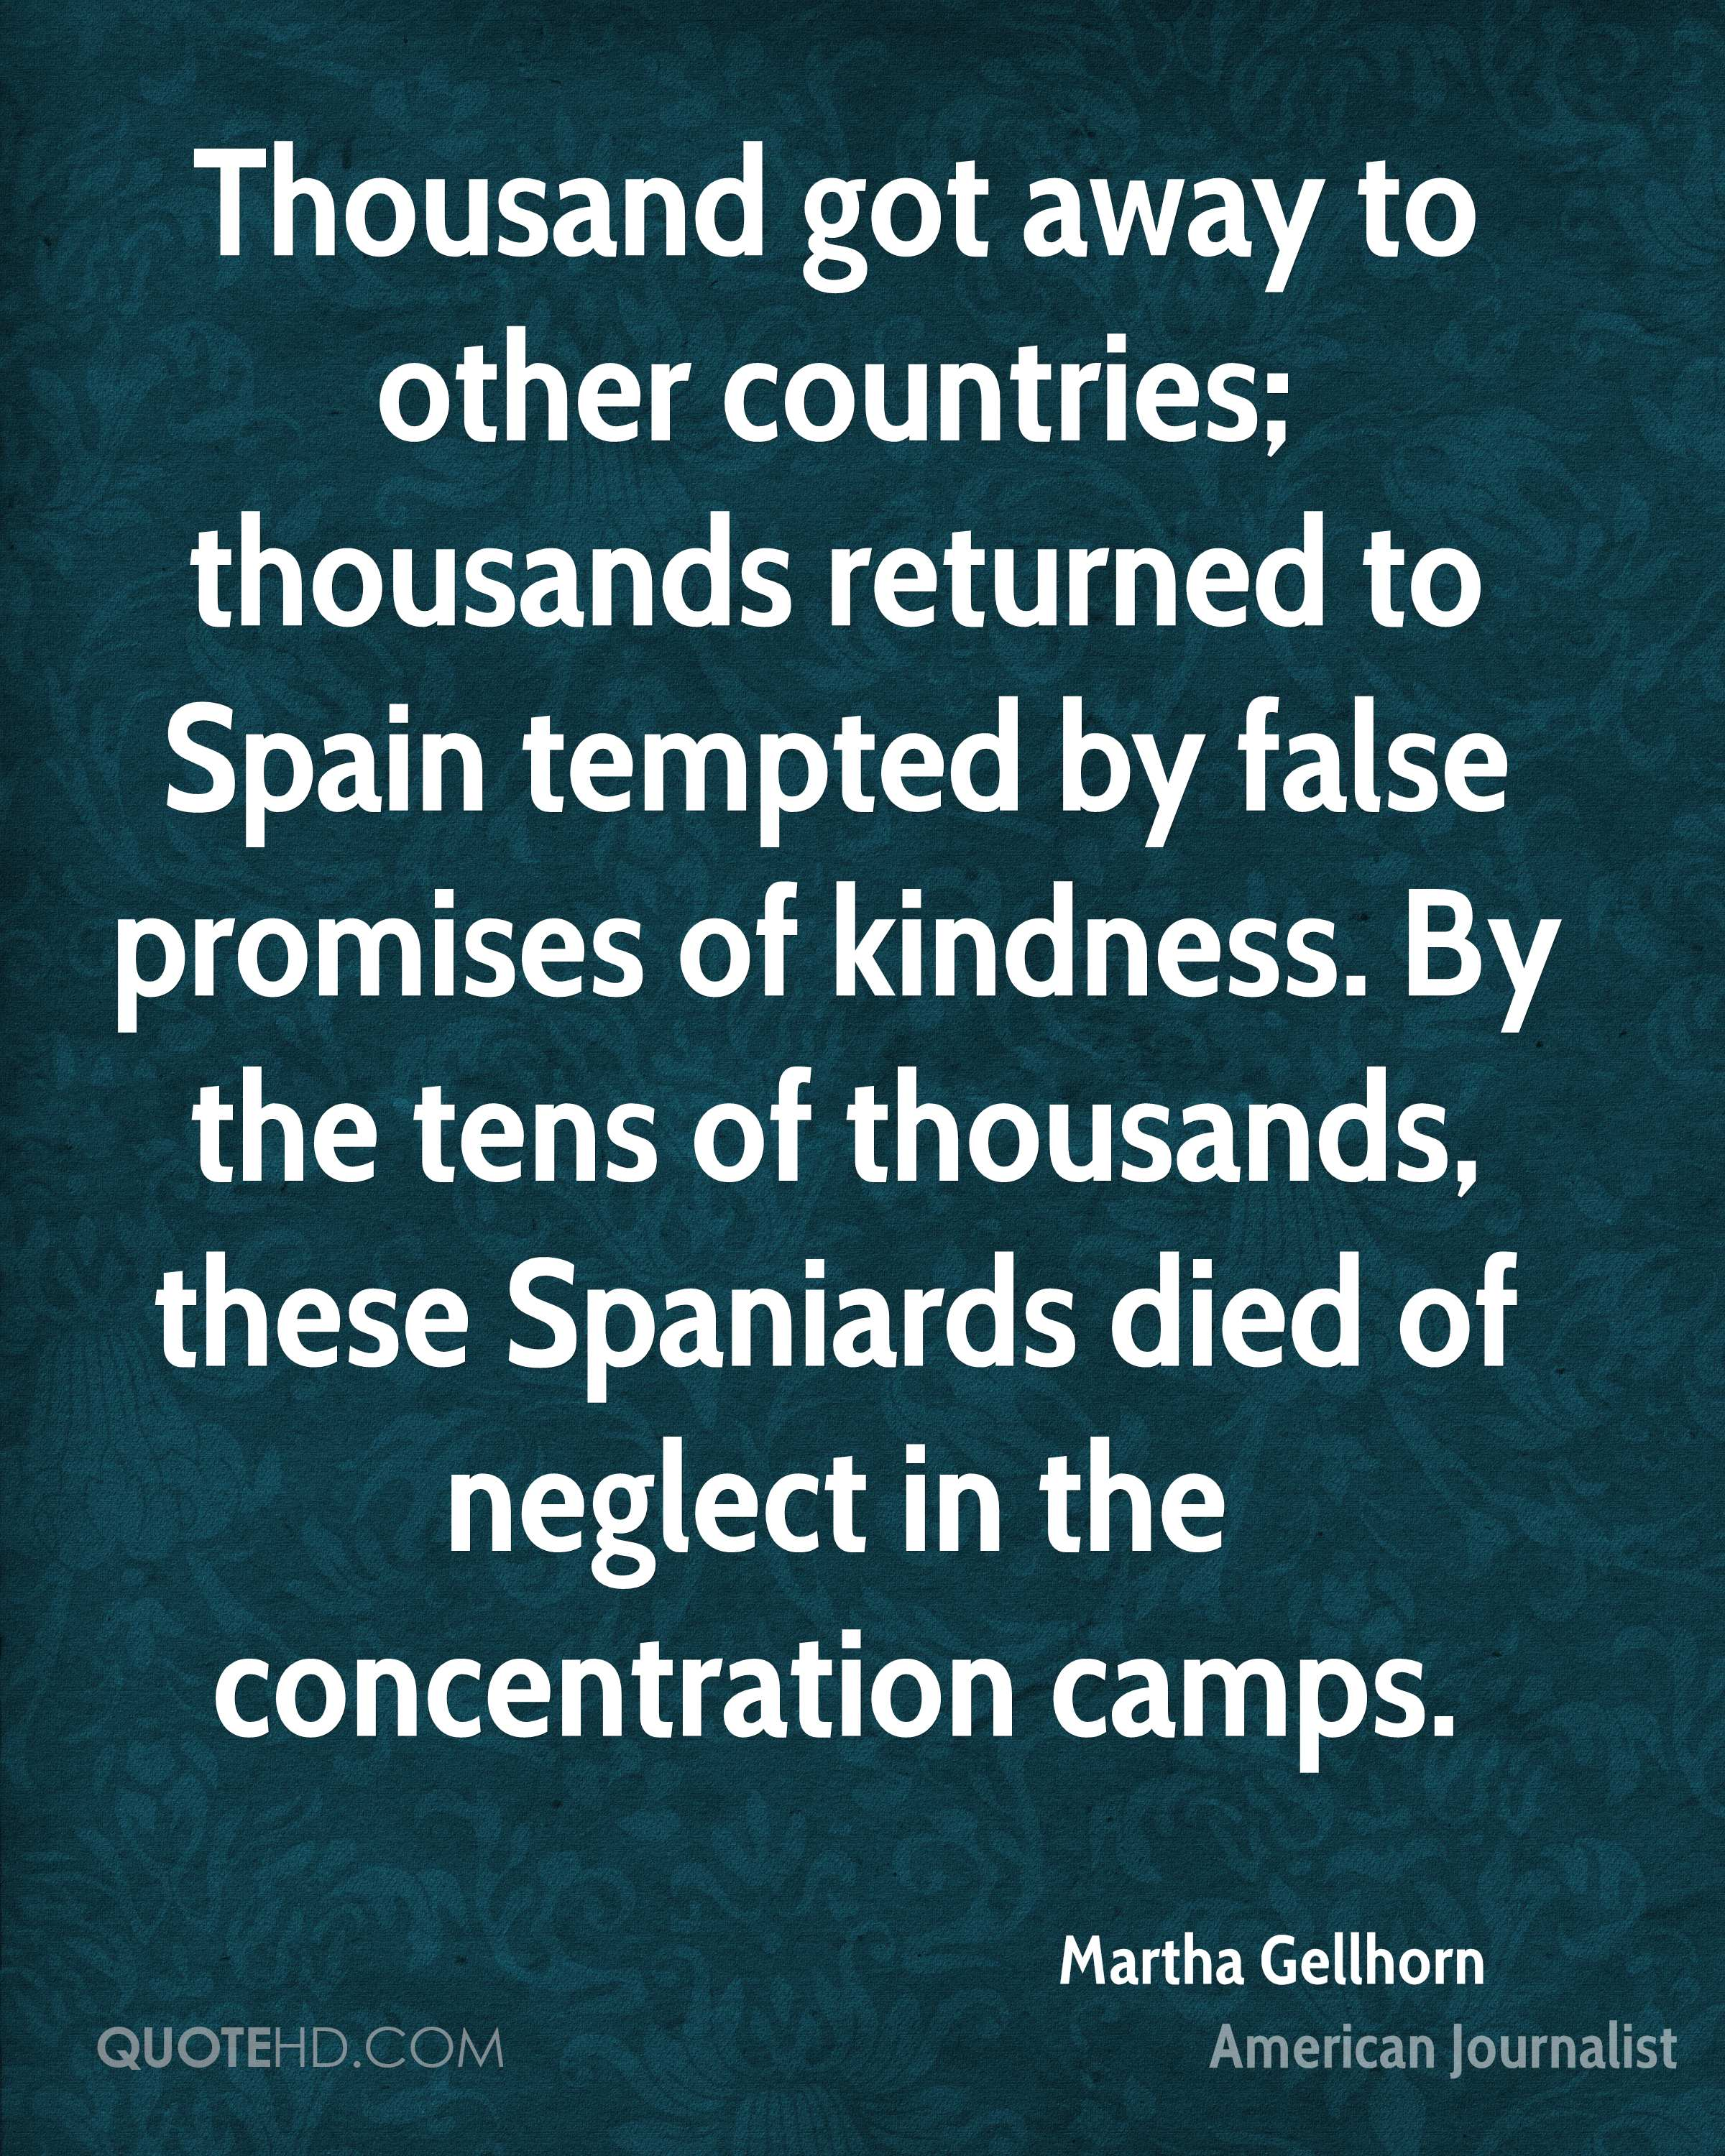 Thousand got away to other countries; thousands returned to Spain tempted by false promises of kindness. By the tens of thousands, these Spaniards died of neglect in the concentration camps.